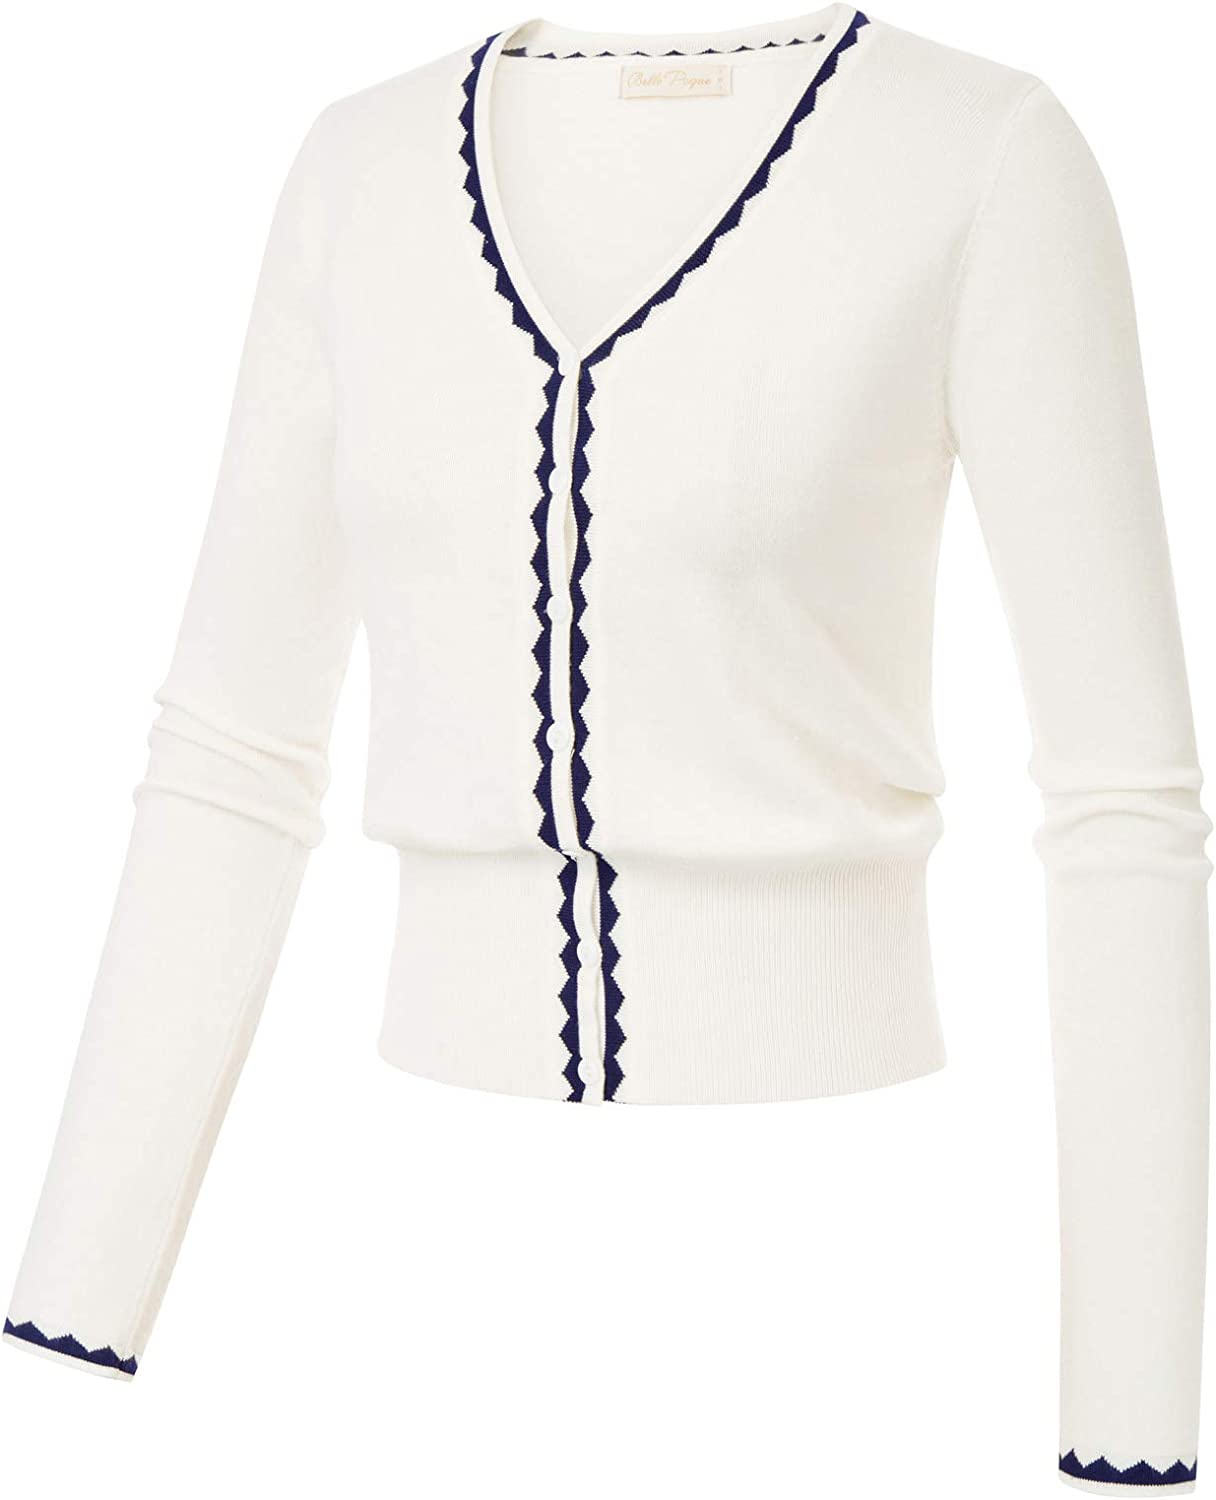 Belle Poque Womens Vintage Long Sleeve Crew Neck Button Evening Party Contrast Cardigan Knitwear Tops GF779